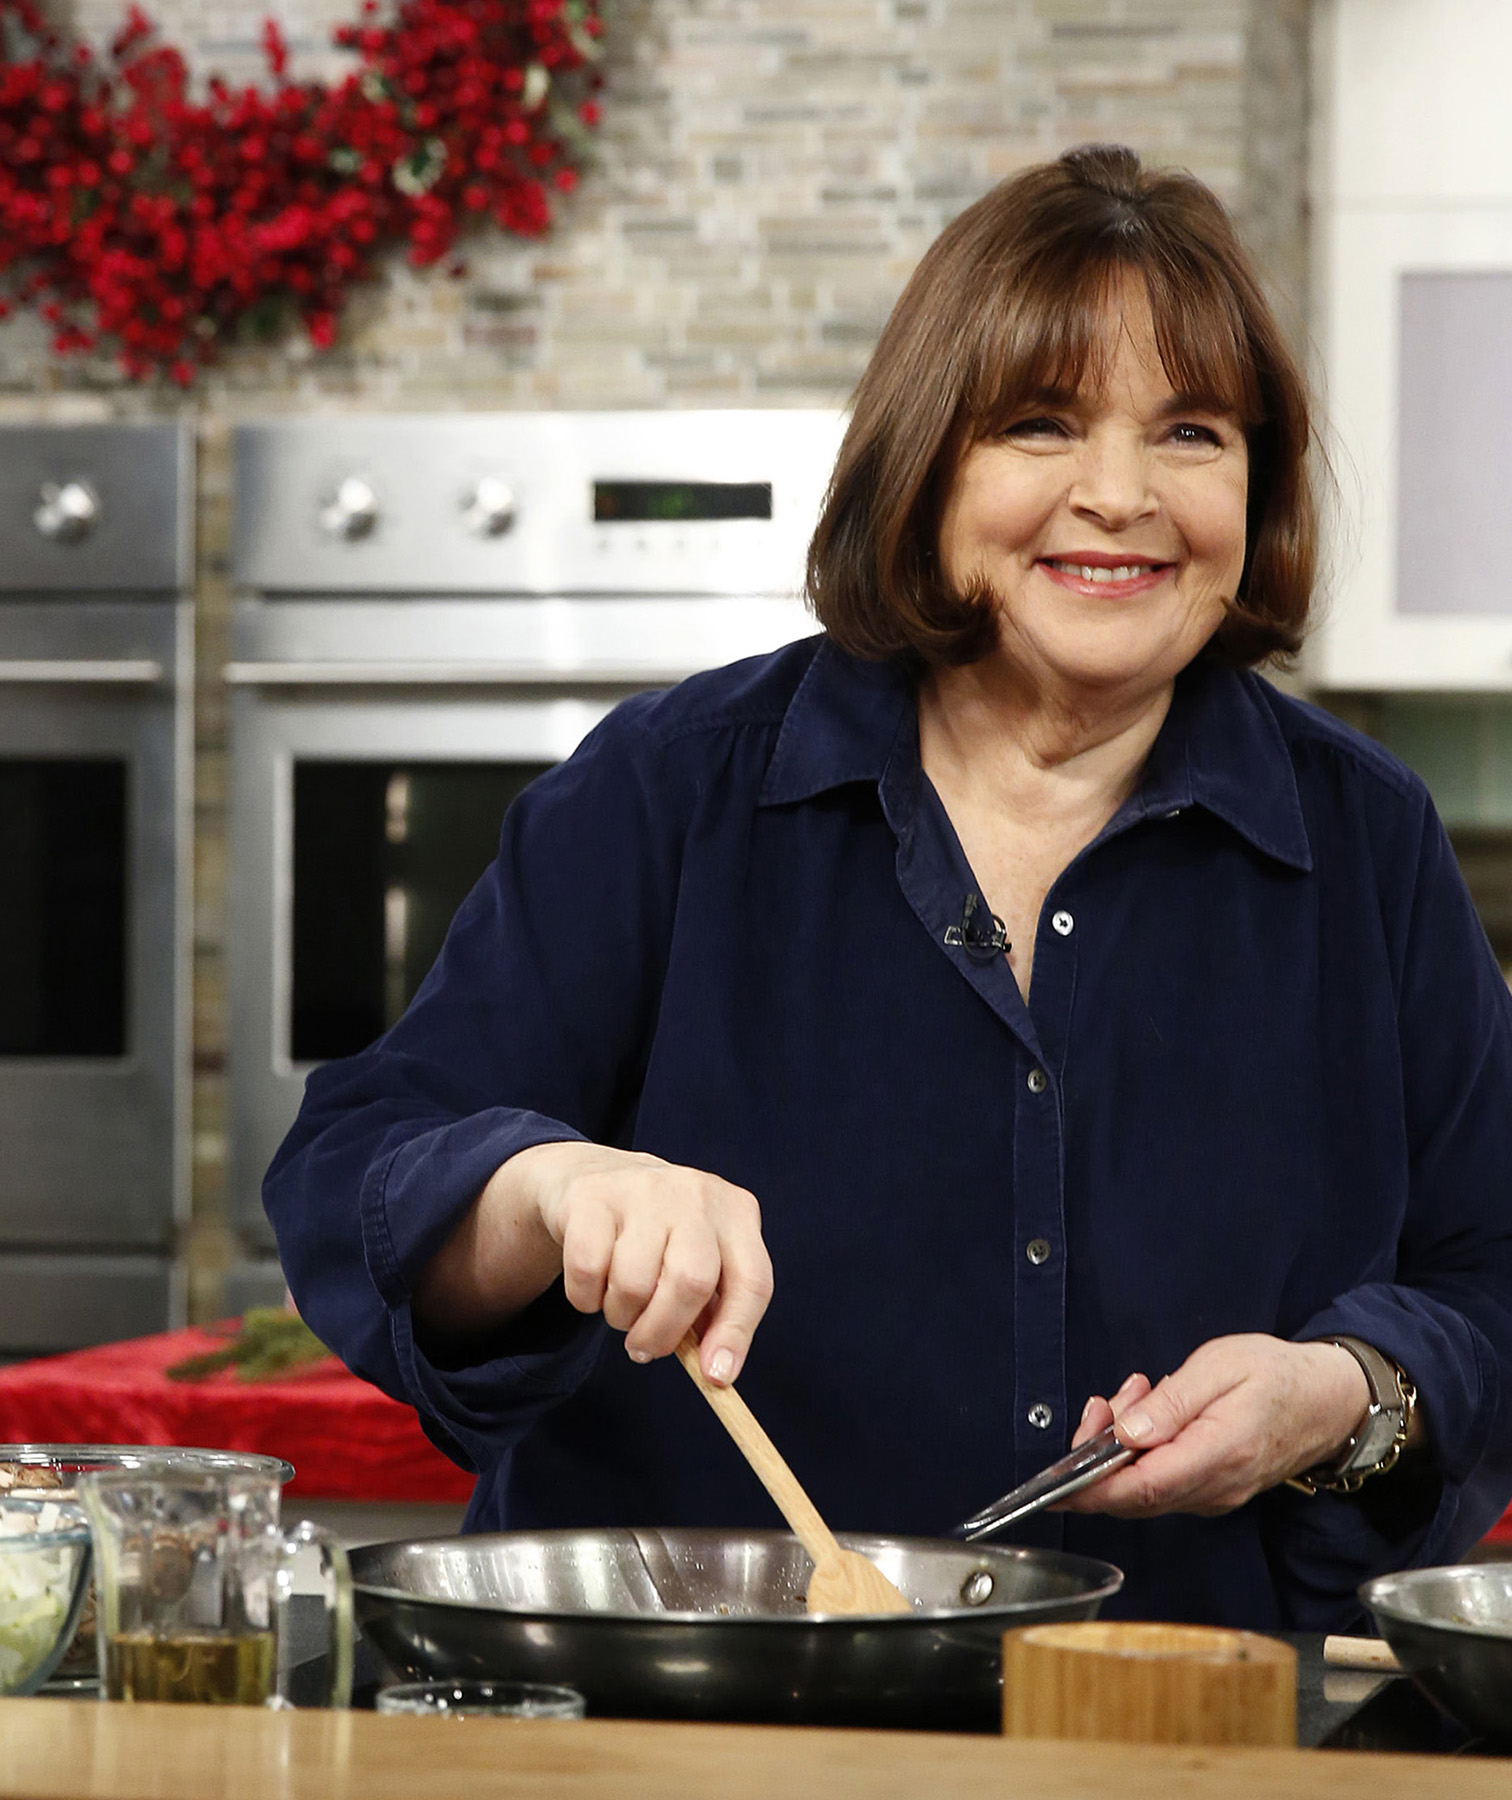 Ina Garten in kitchen